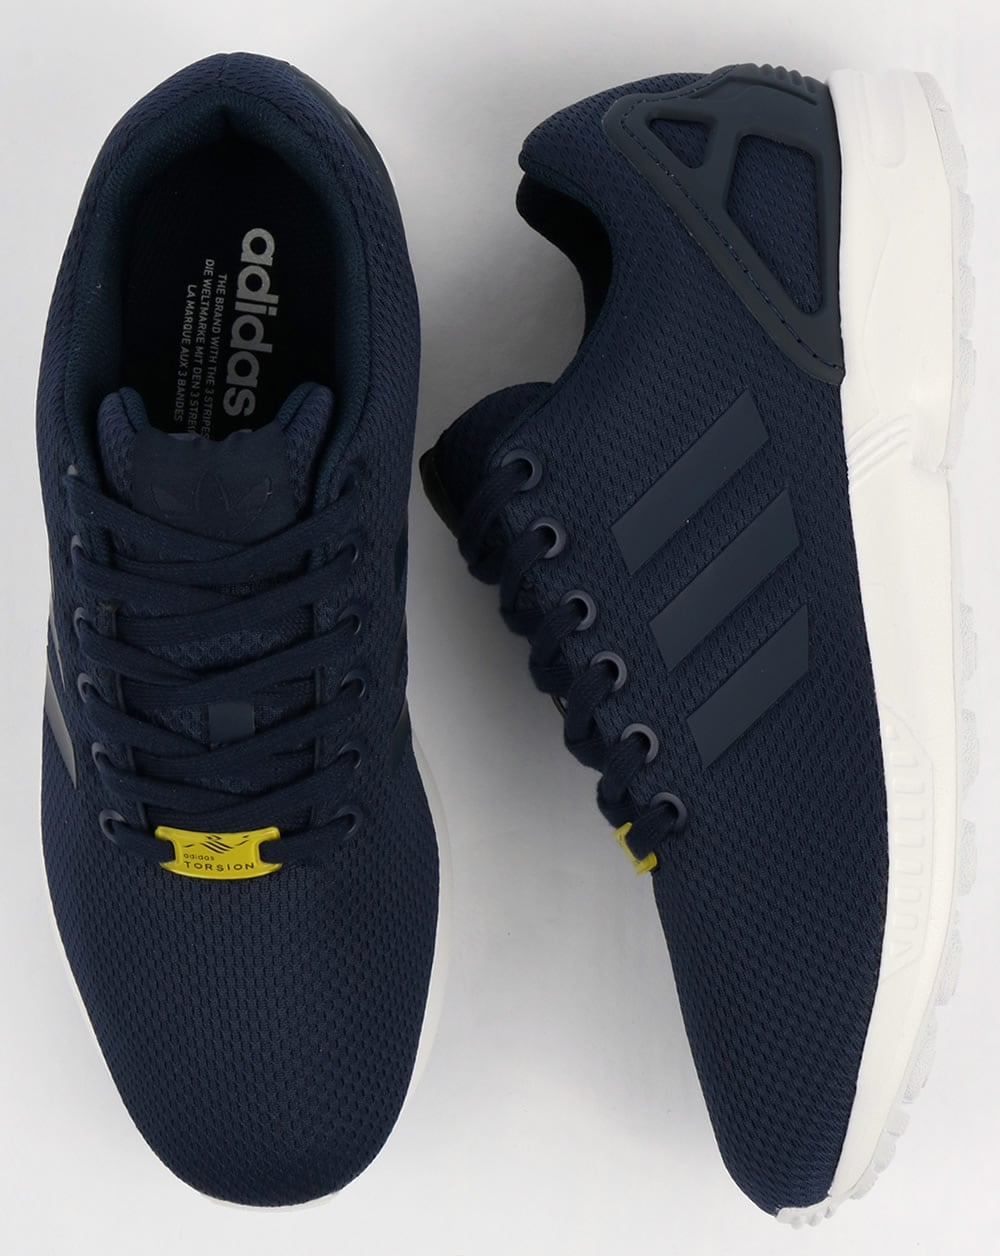 reputable site cd78c a78a8 Adidas ZX Flux Trainers New Navy White